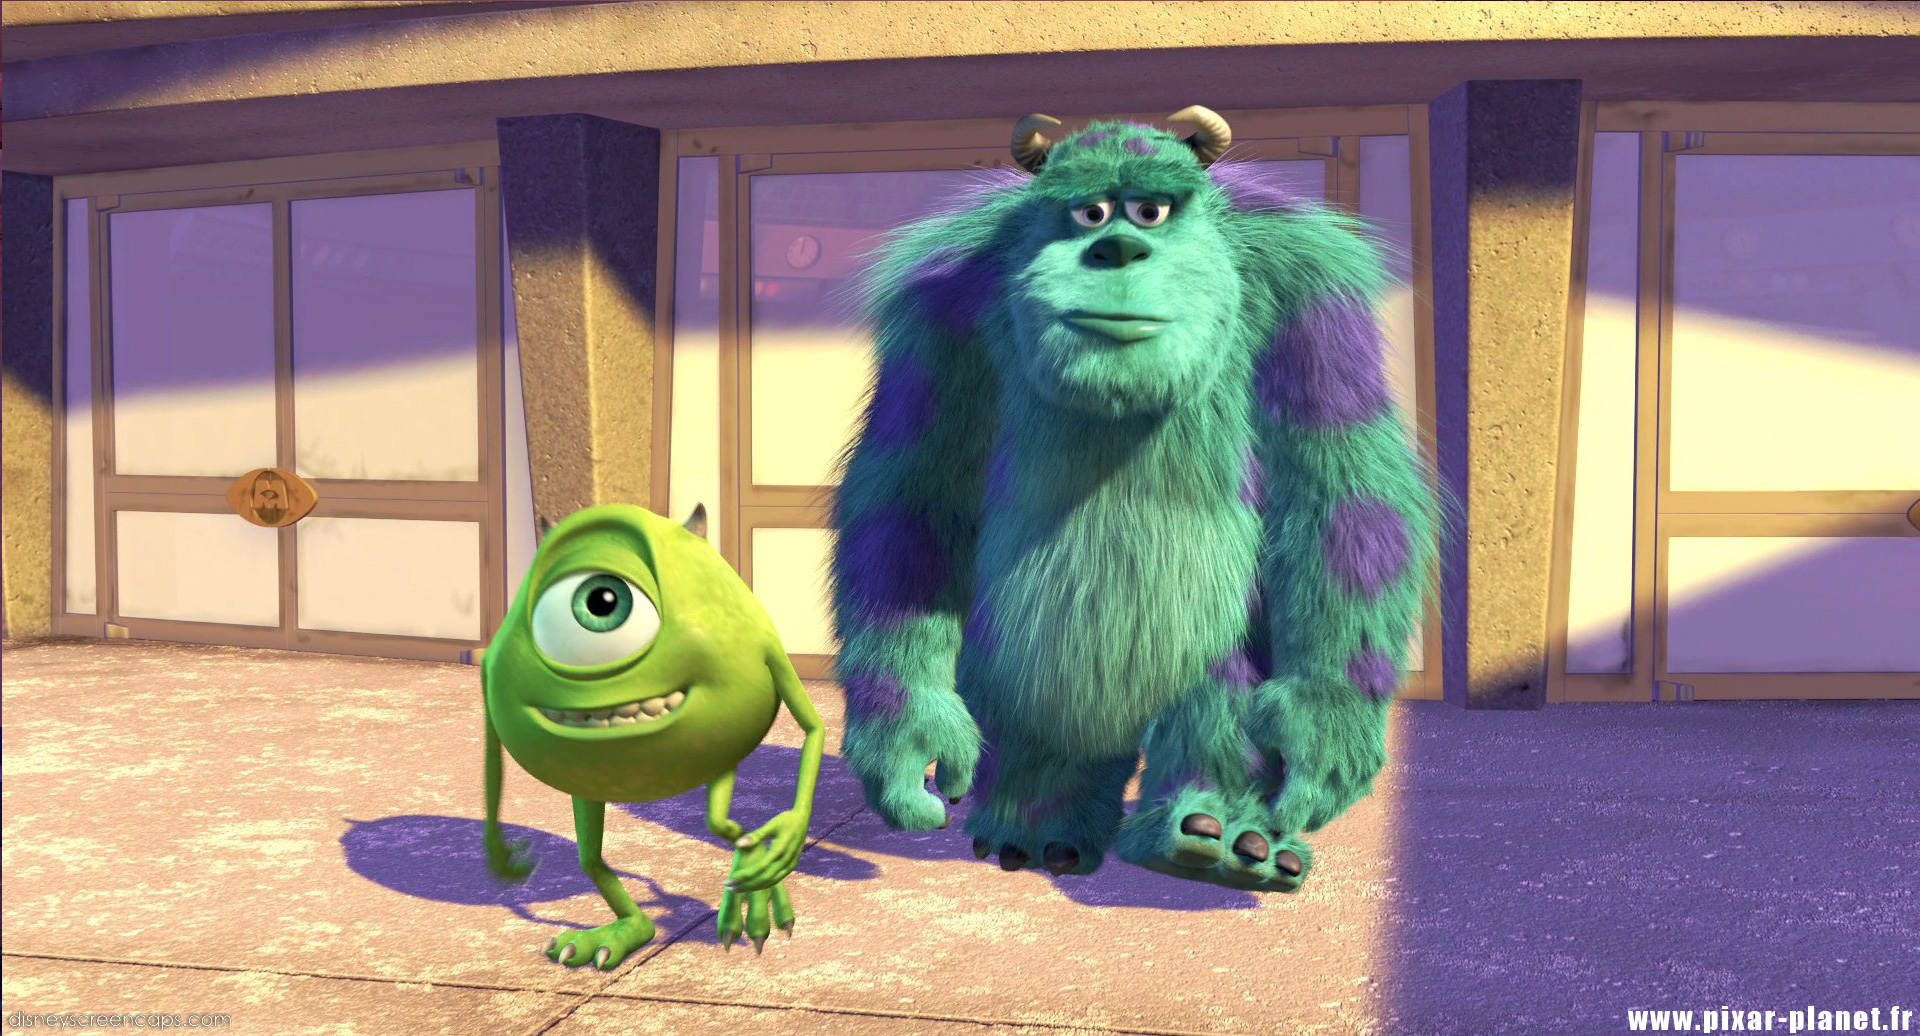 Pixar Planet Disney monstres cie monsters inc